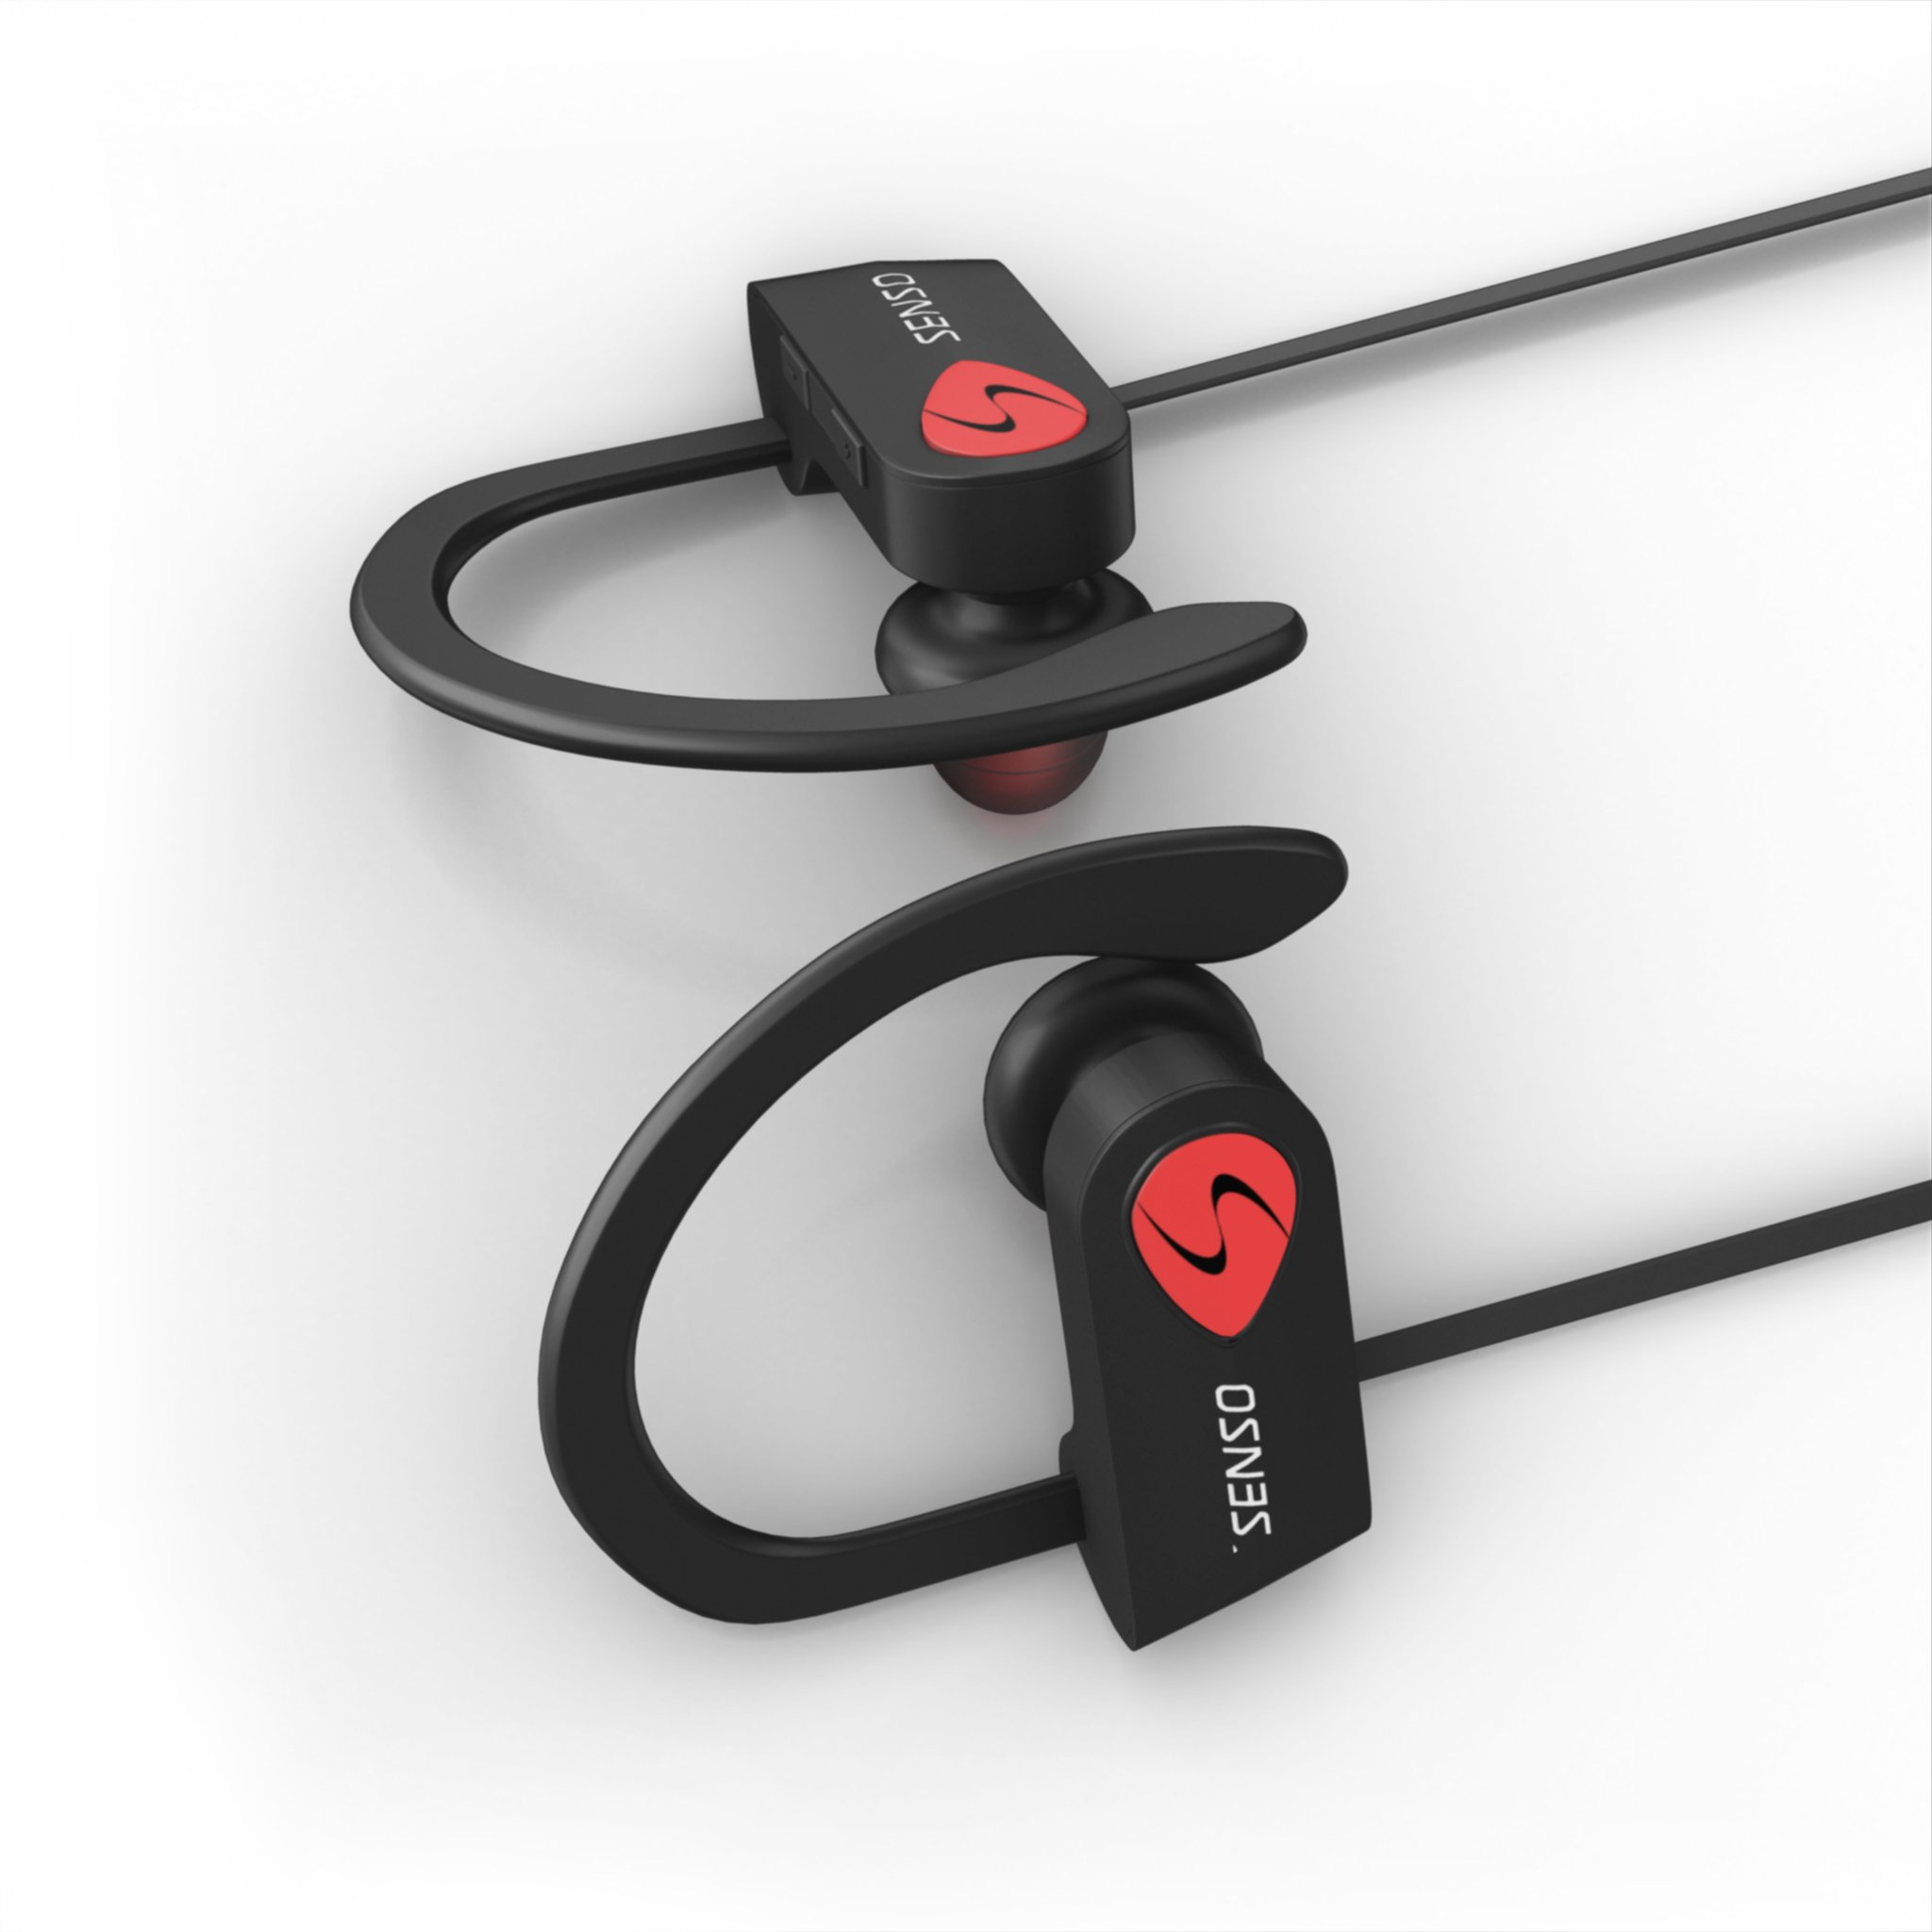 SENSO Bluetooth Headphones, Best Wireless Sports Earphones w/Mic IPX7 Waterproof HD Stereo Sweatproof Earbuds for Gym Running Workout 8 Hour Battery Noise Cancelling Headsets by Senso (Image #6)